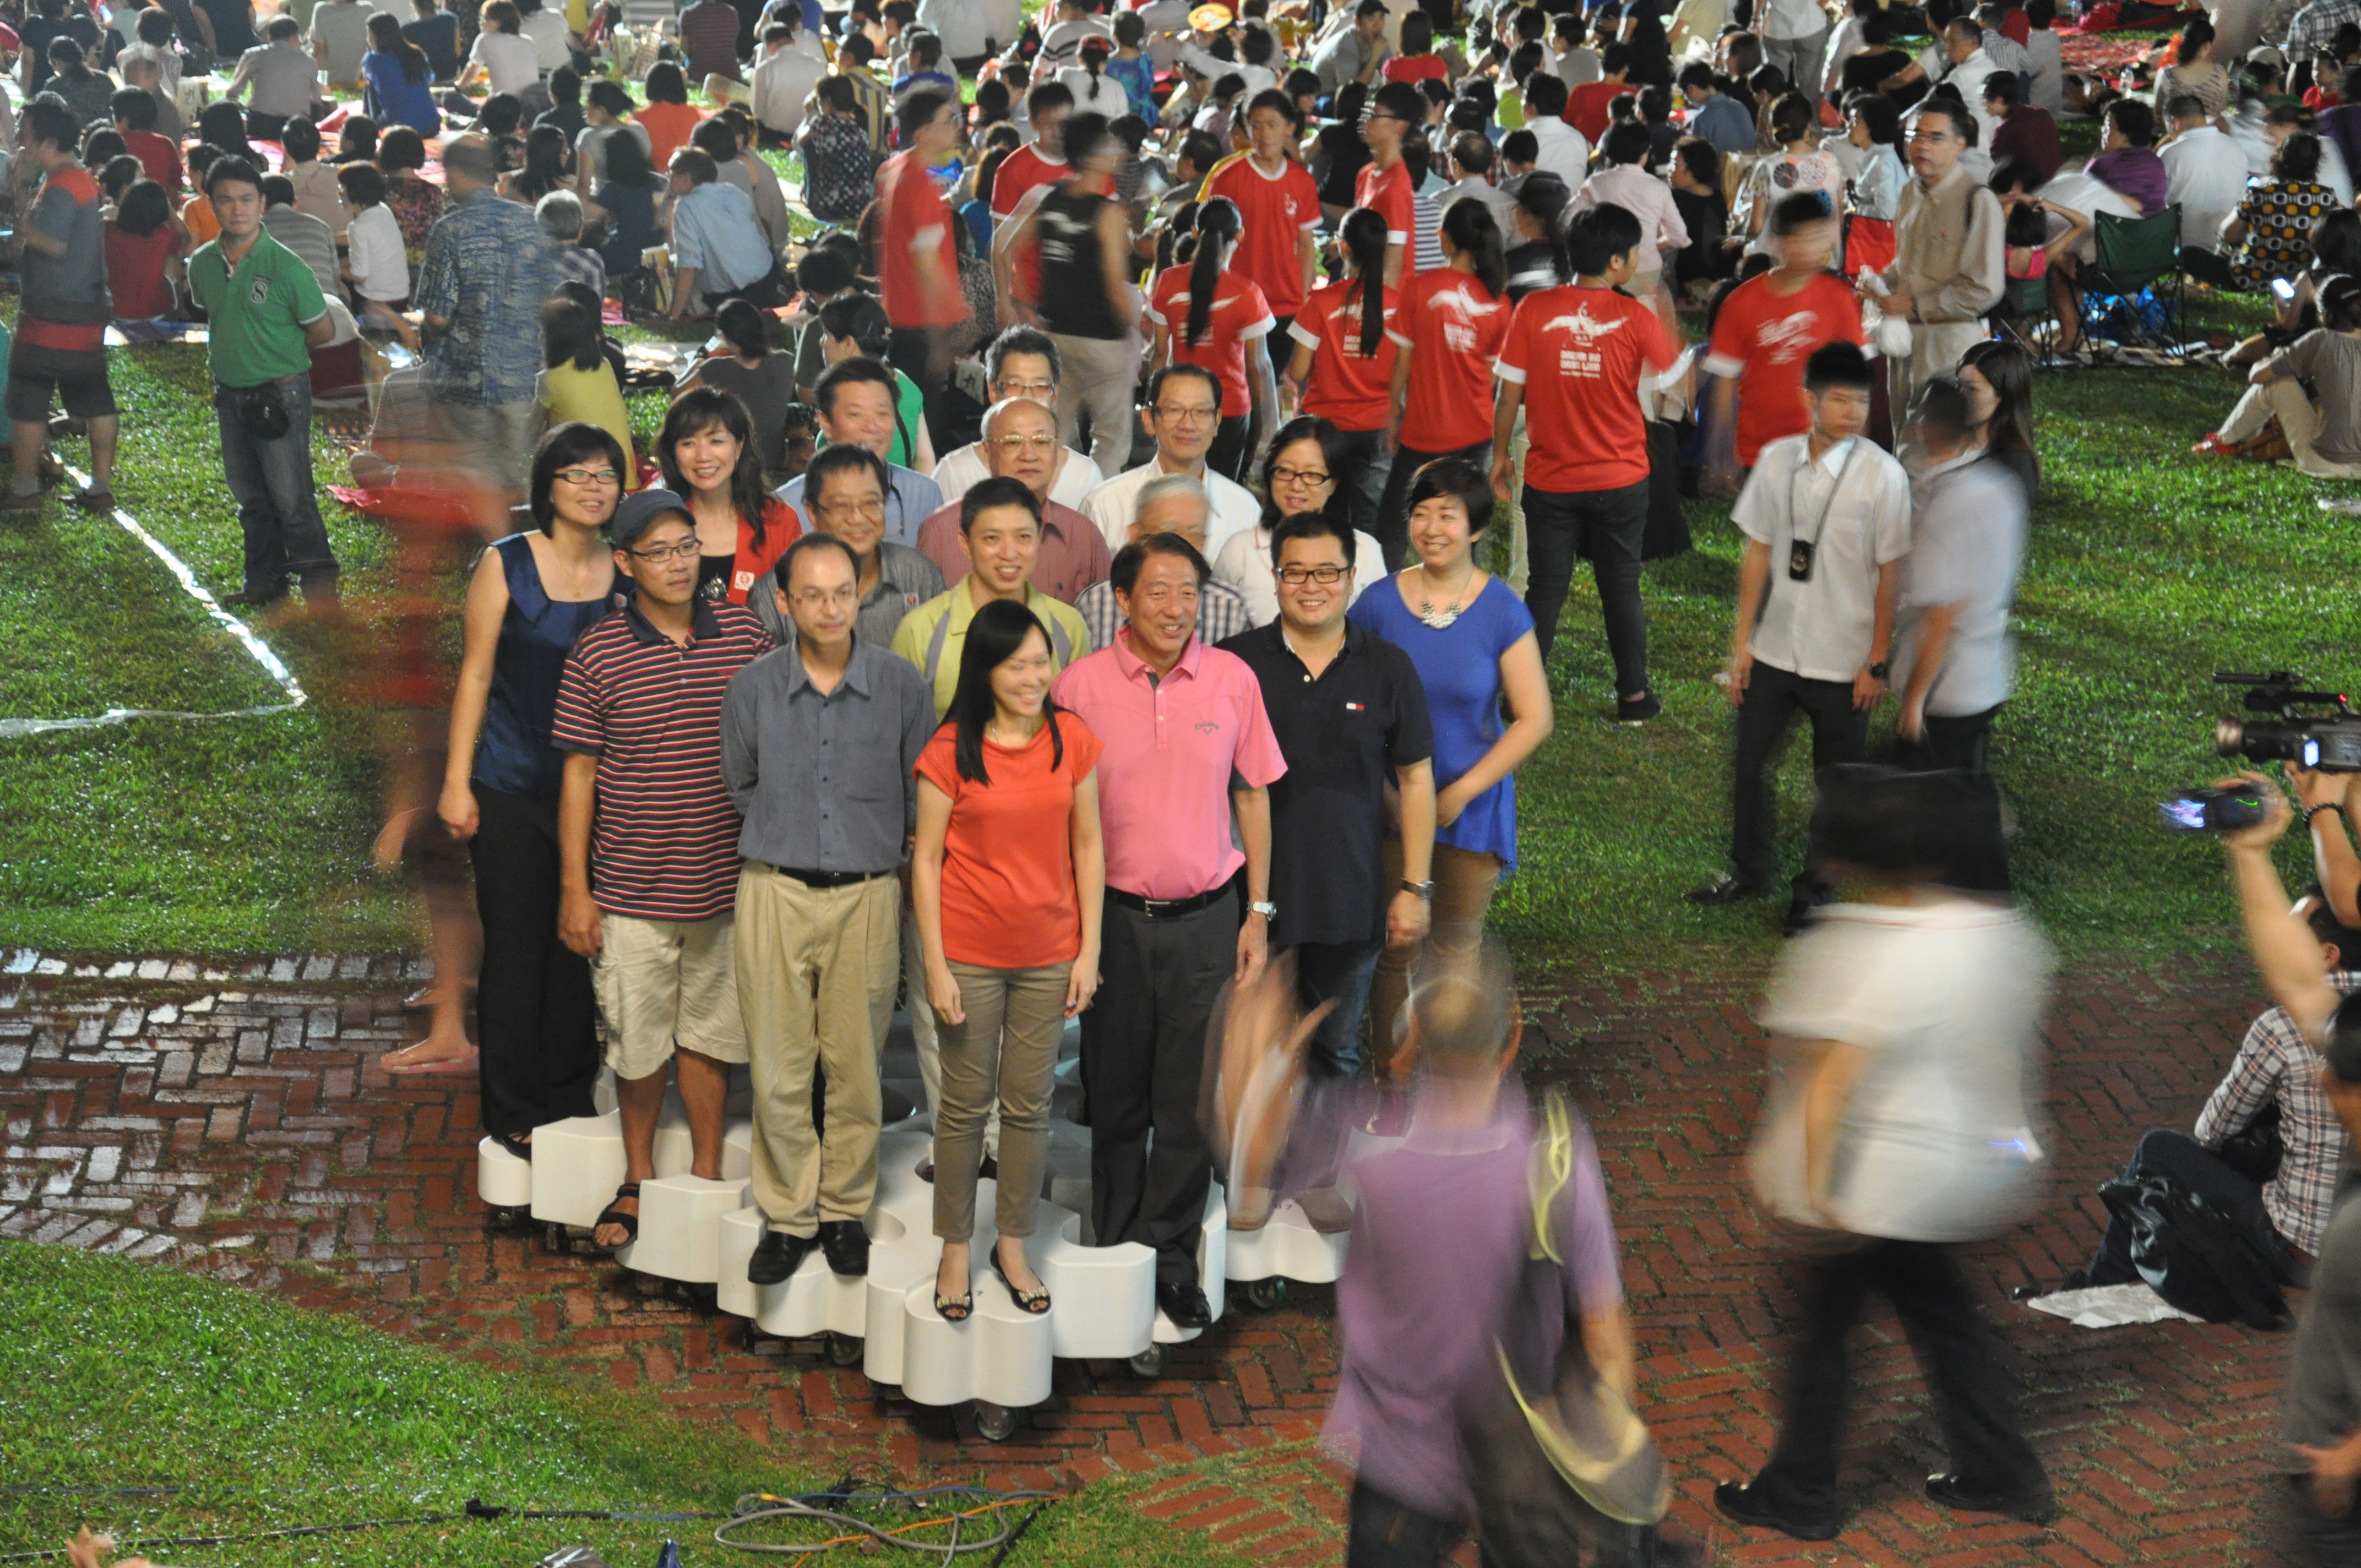 One Cubic 2013 - teo chee hean